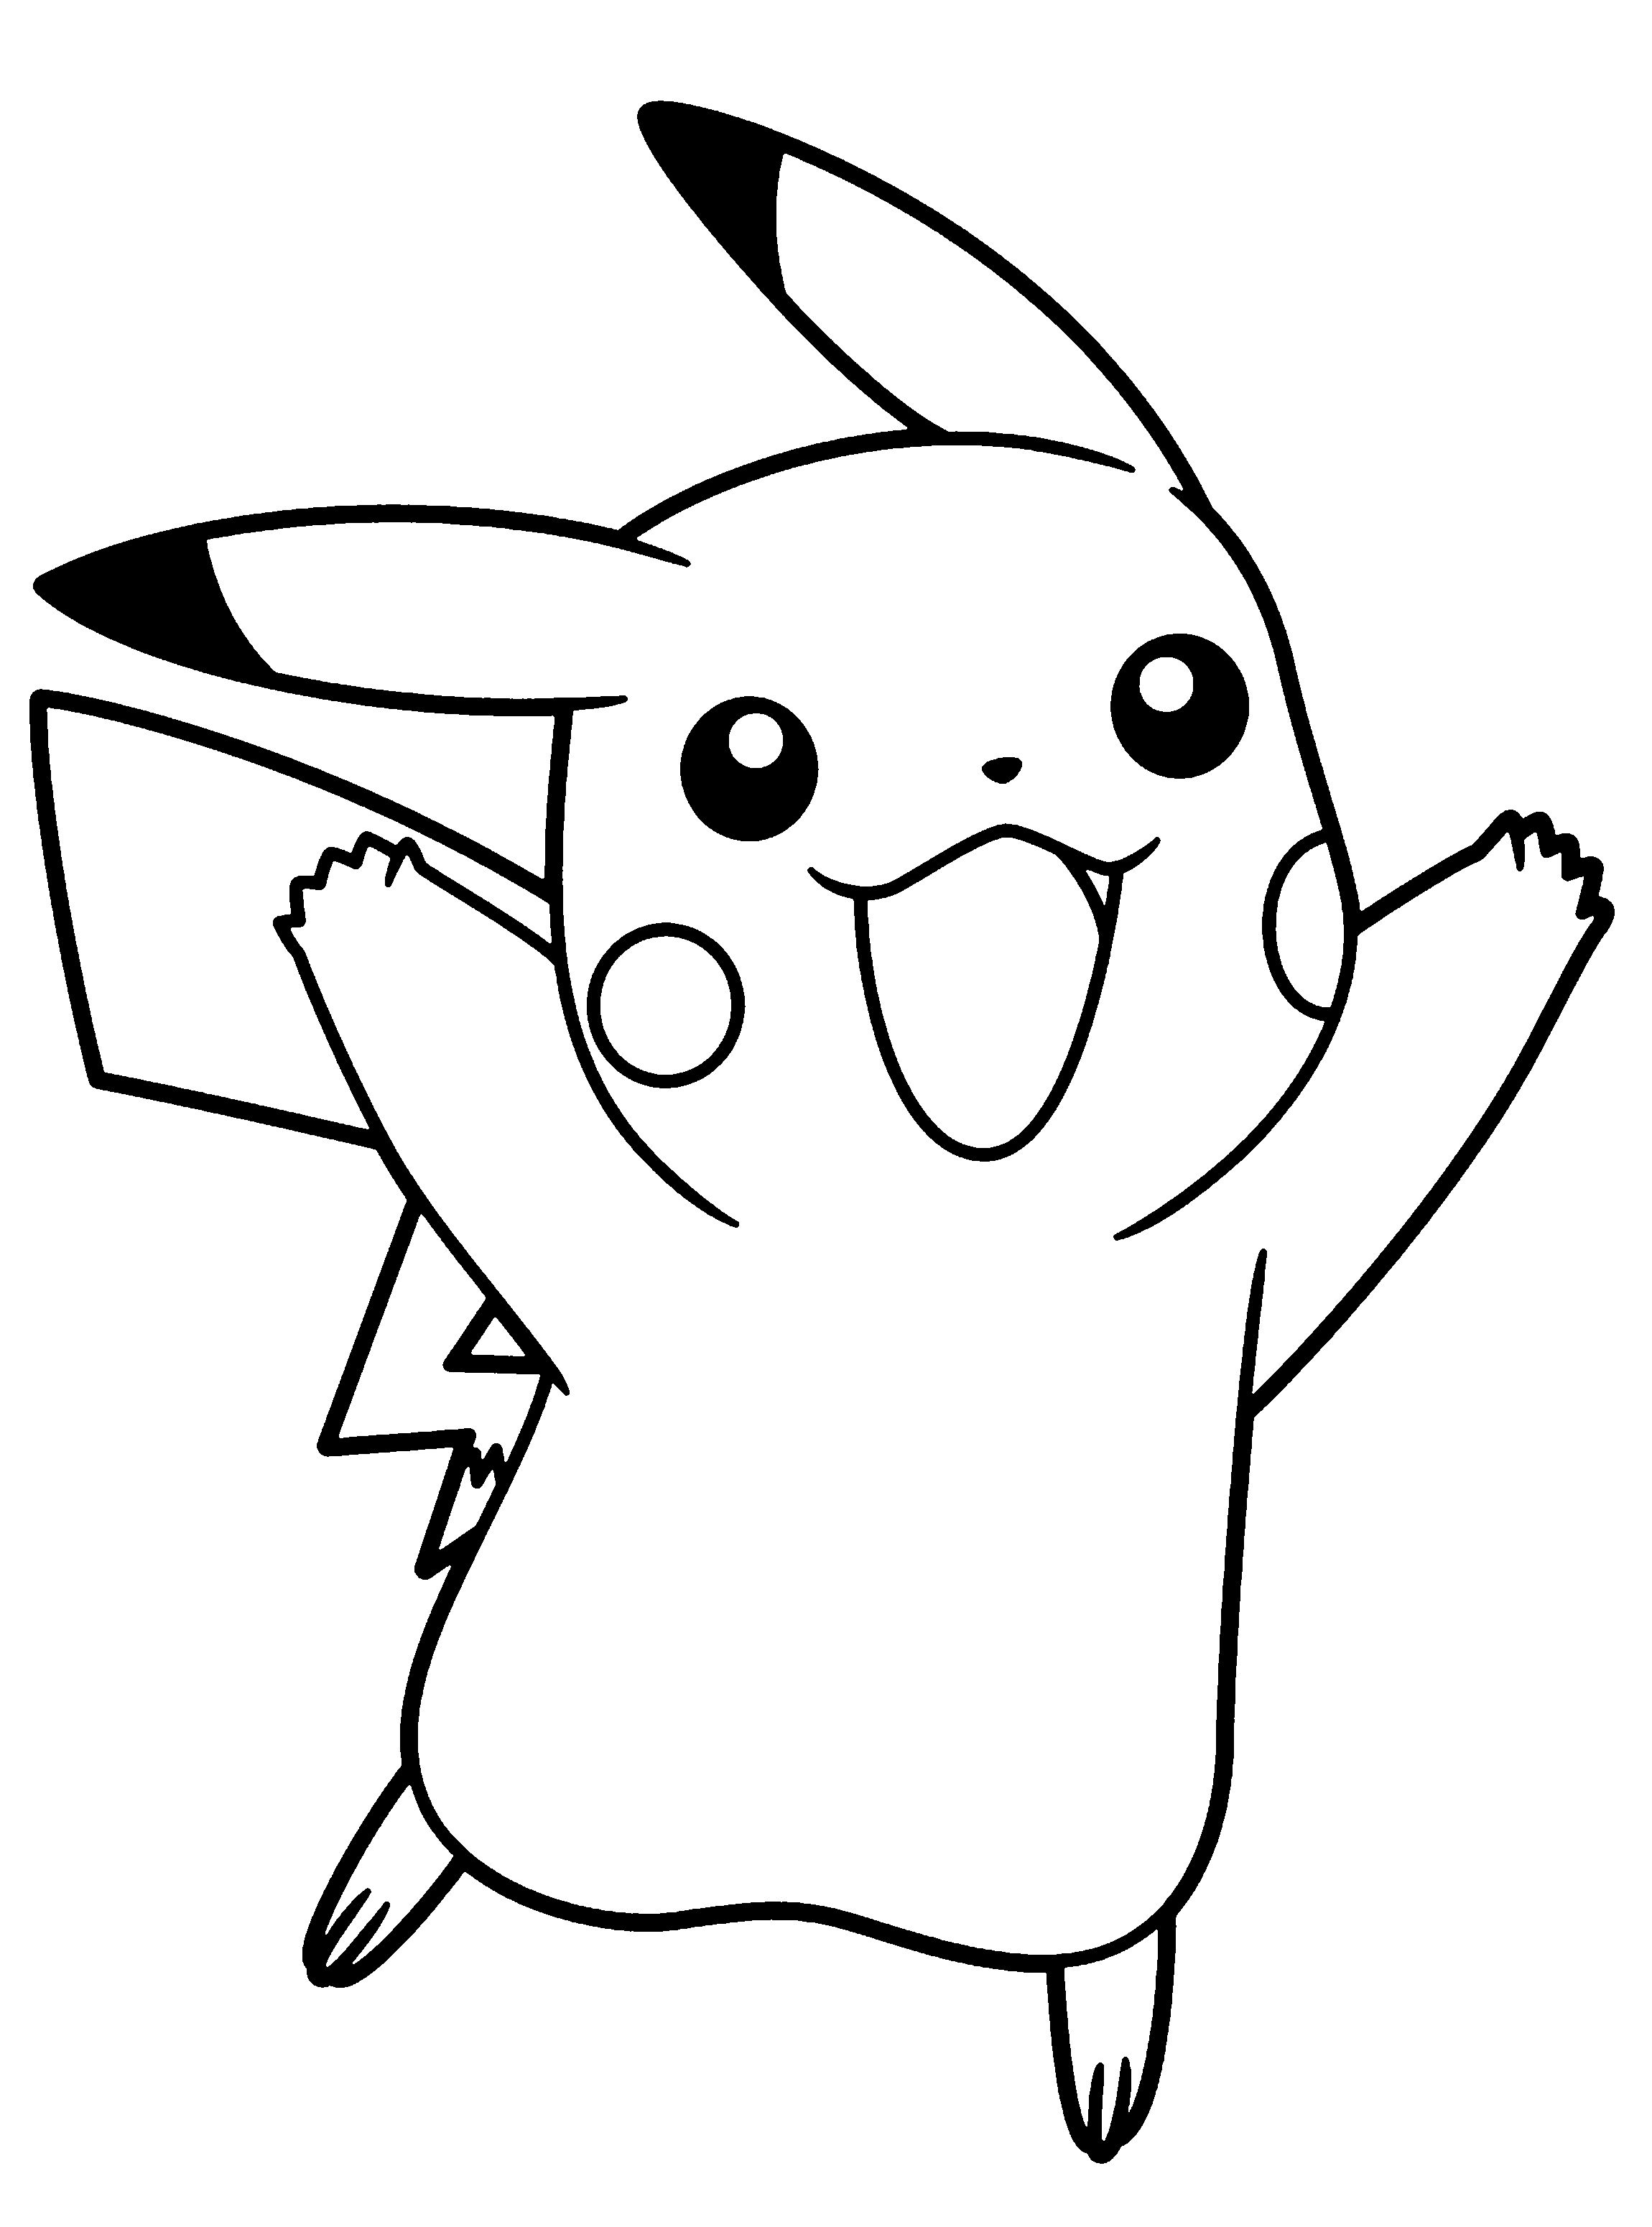 Pikachu Coloring Page Free Printable In